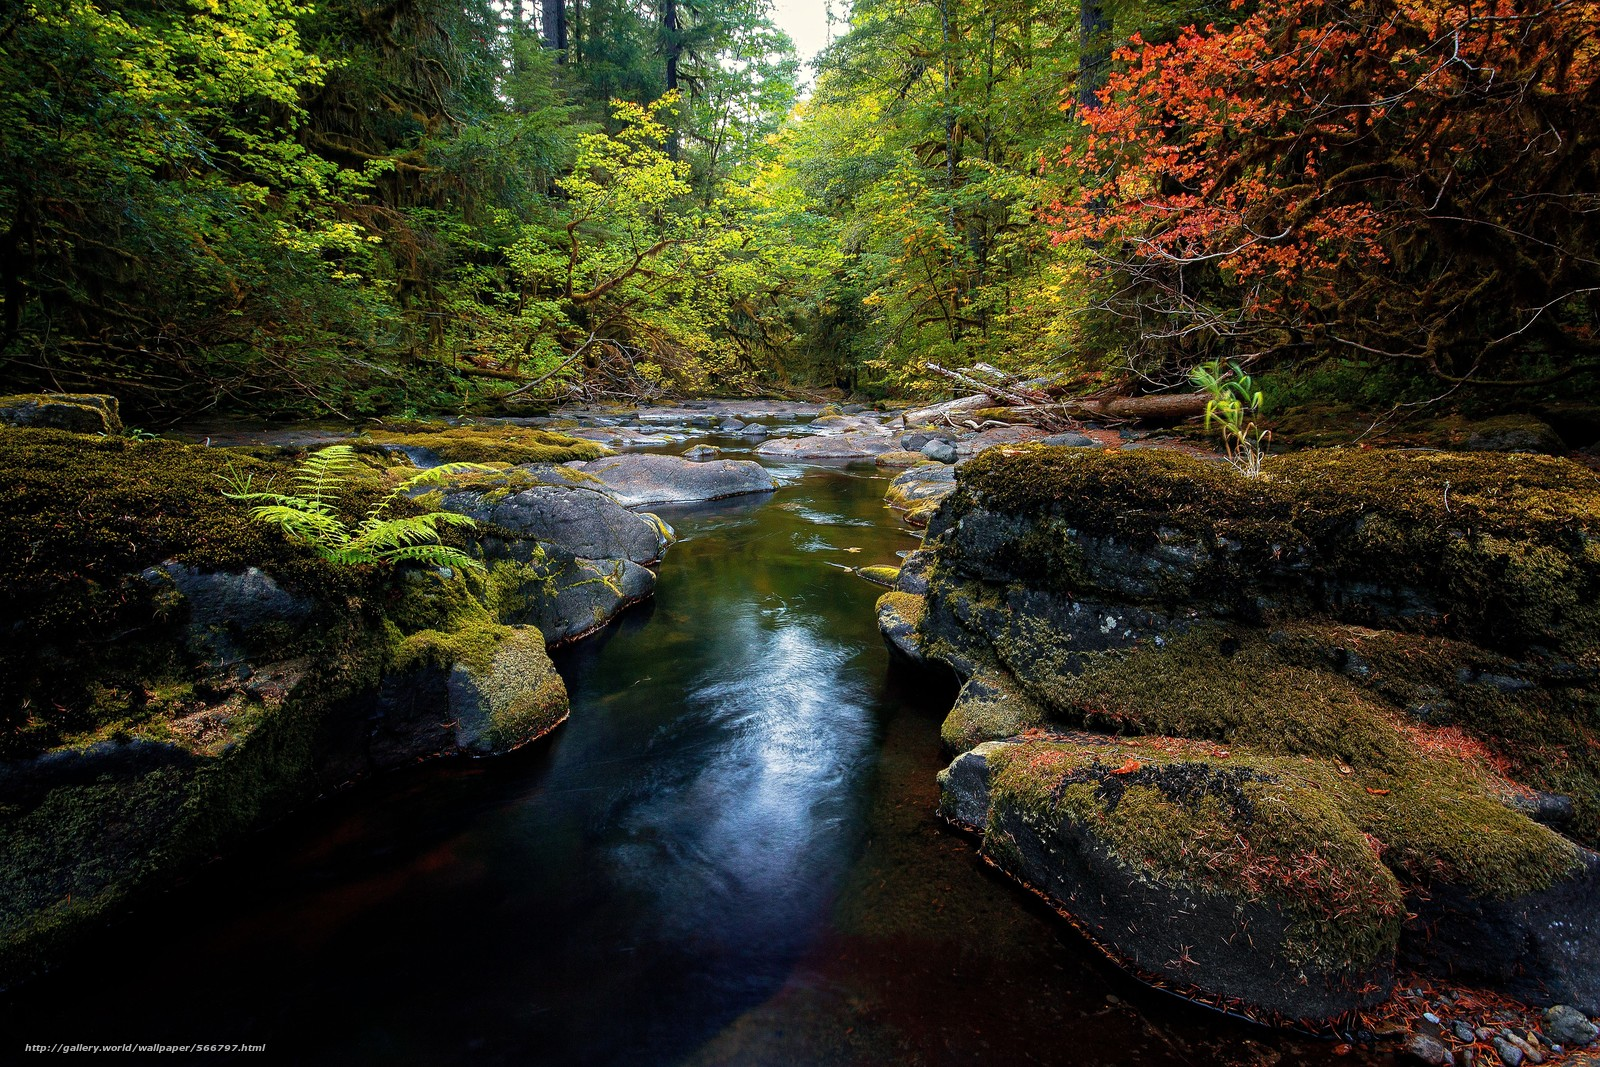 forest, trees, stones, small river, nature